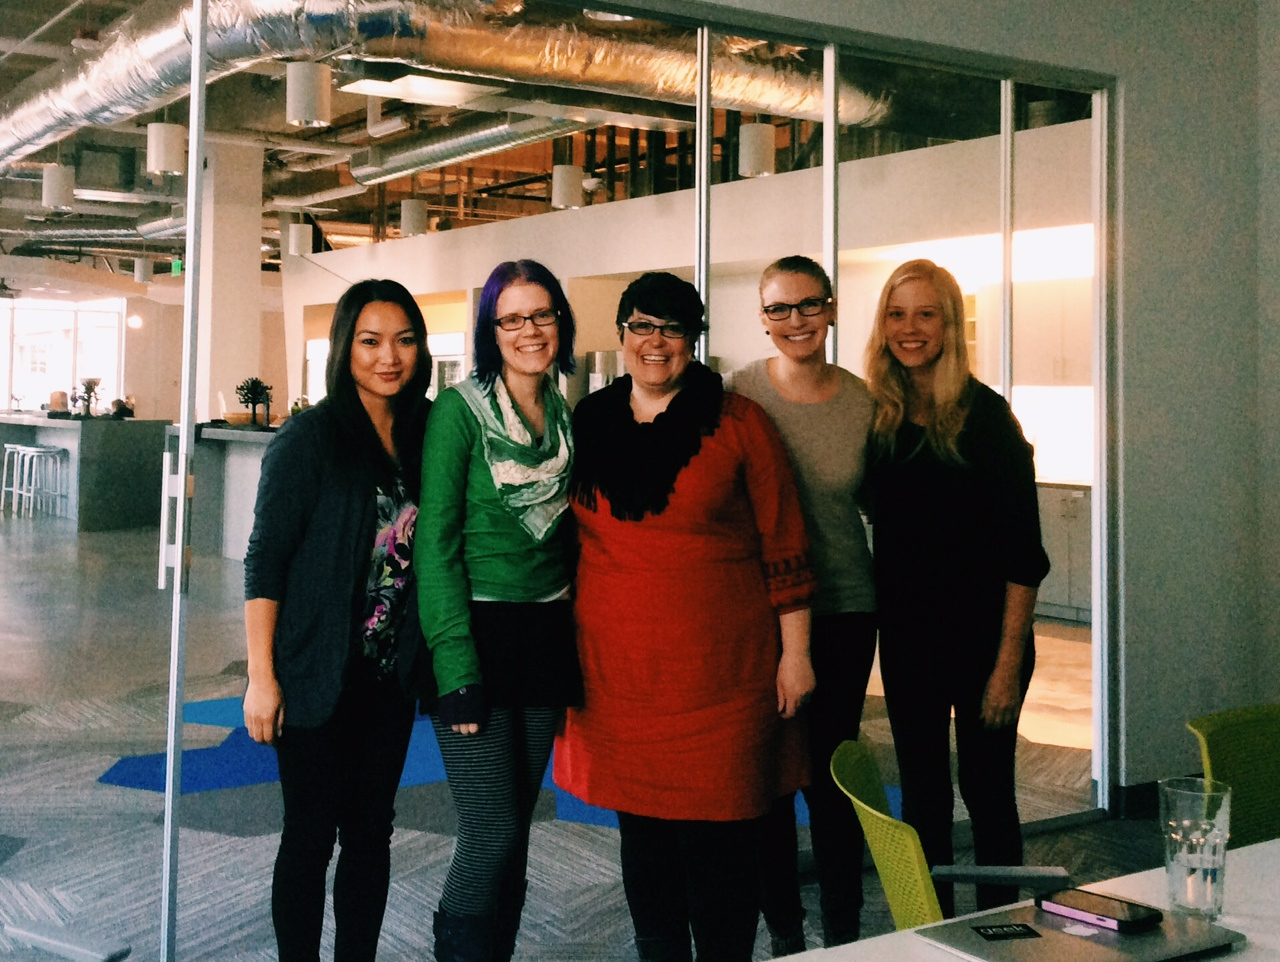 Moz community team (from left to right): Charlene Inoncillo, Erica McGillivray, Jennifer Sable Lopez, Danie Launders, Megan Singley [not pictured: Keri Morgret]